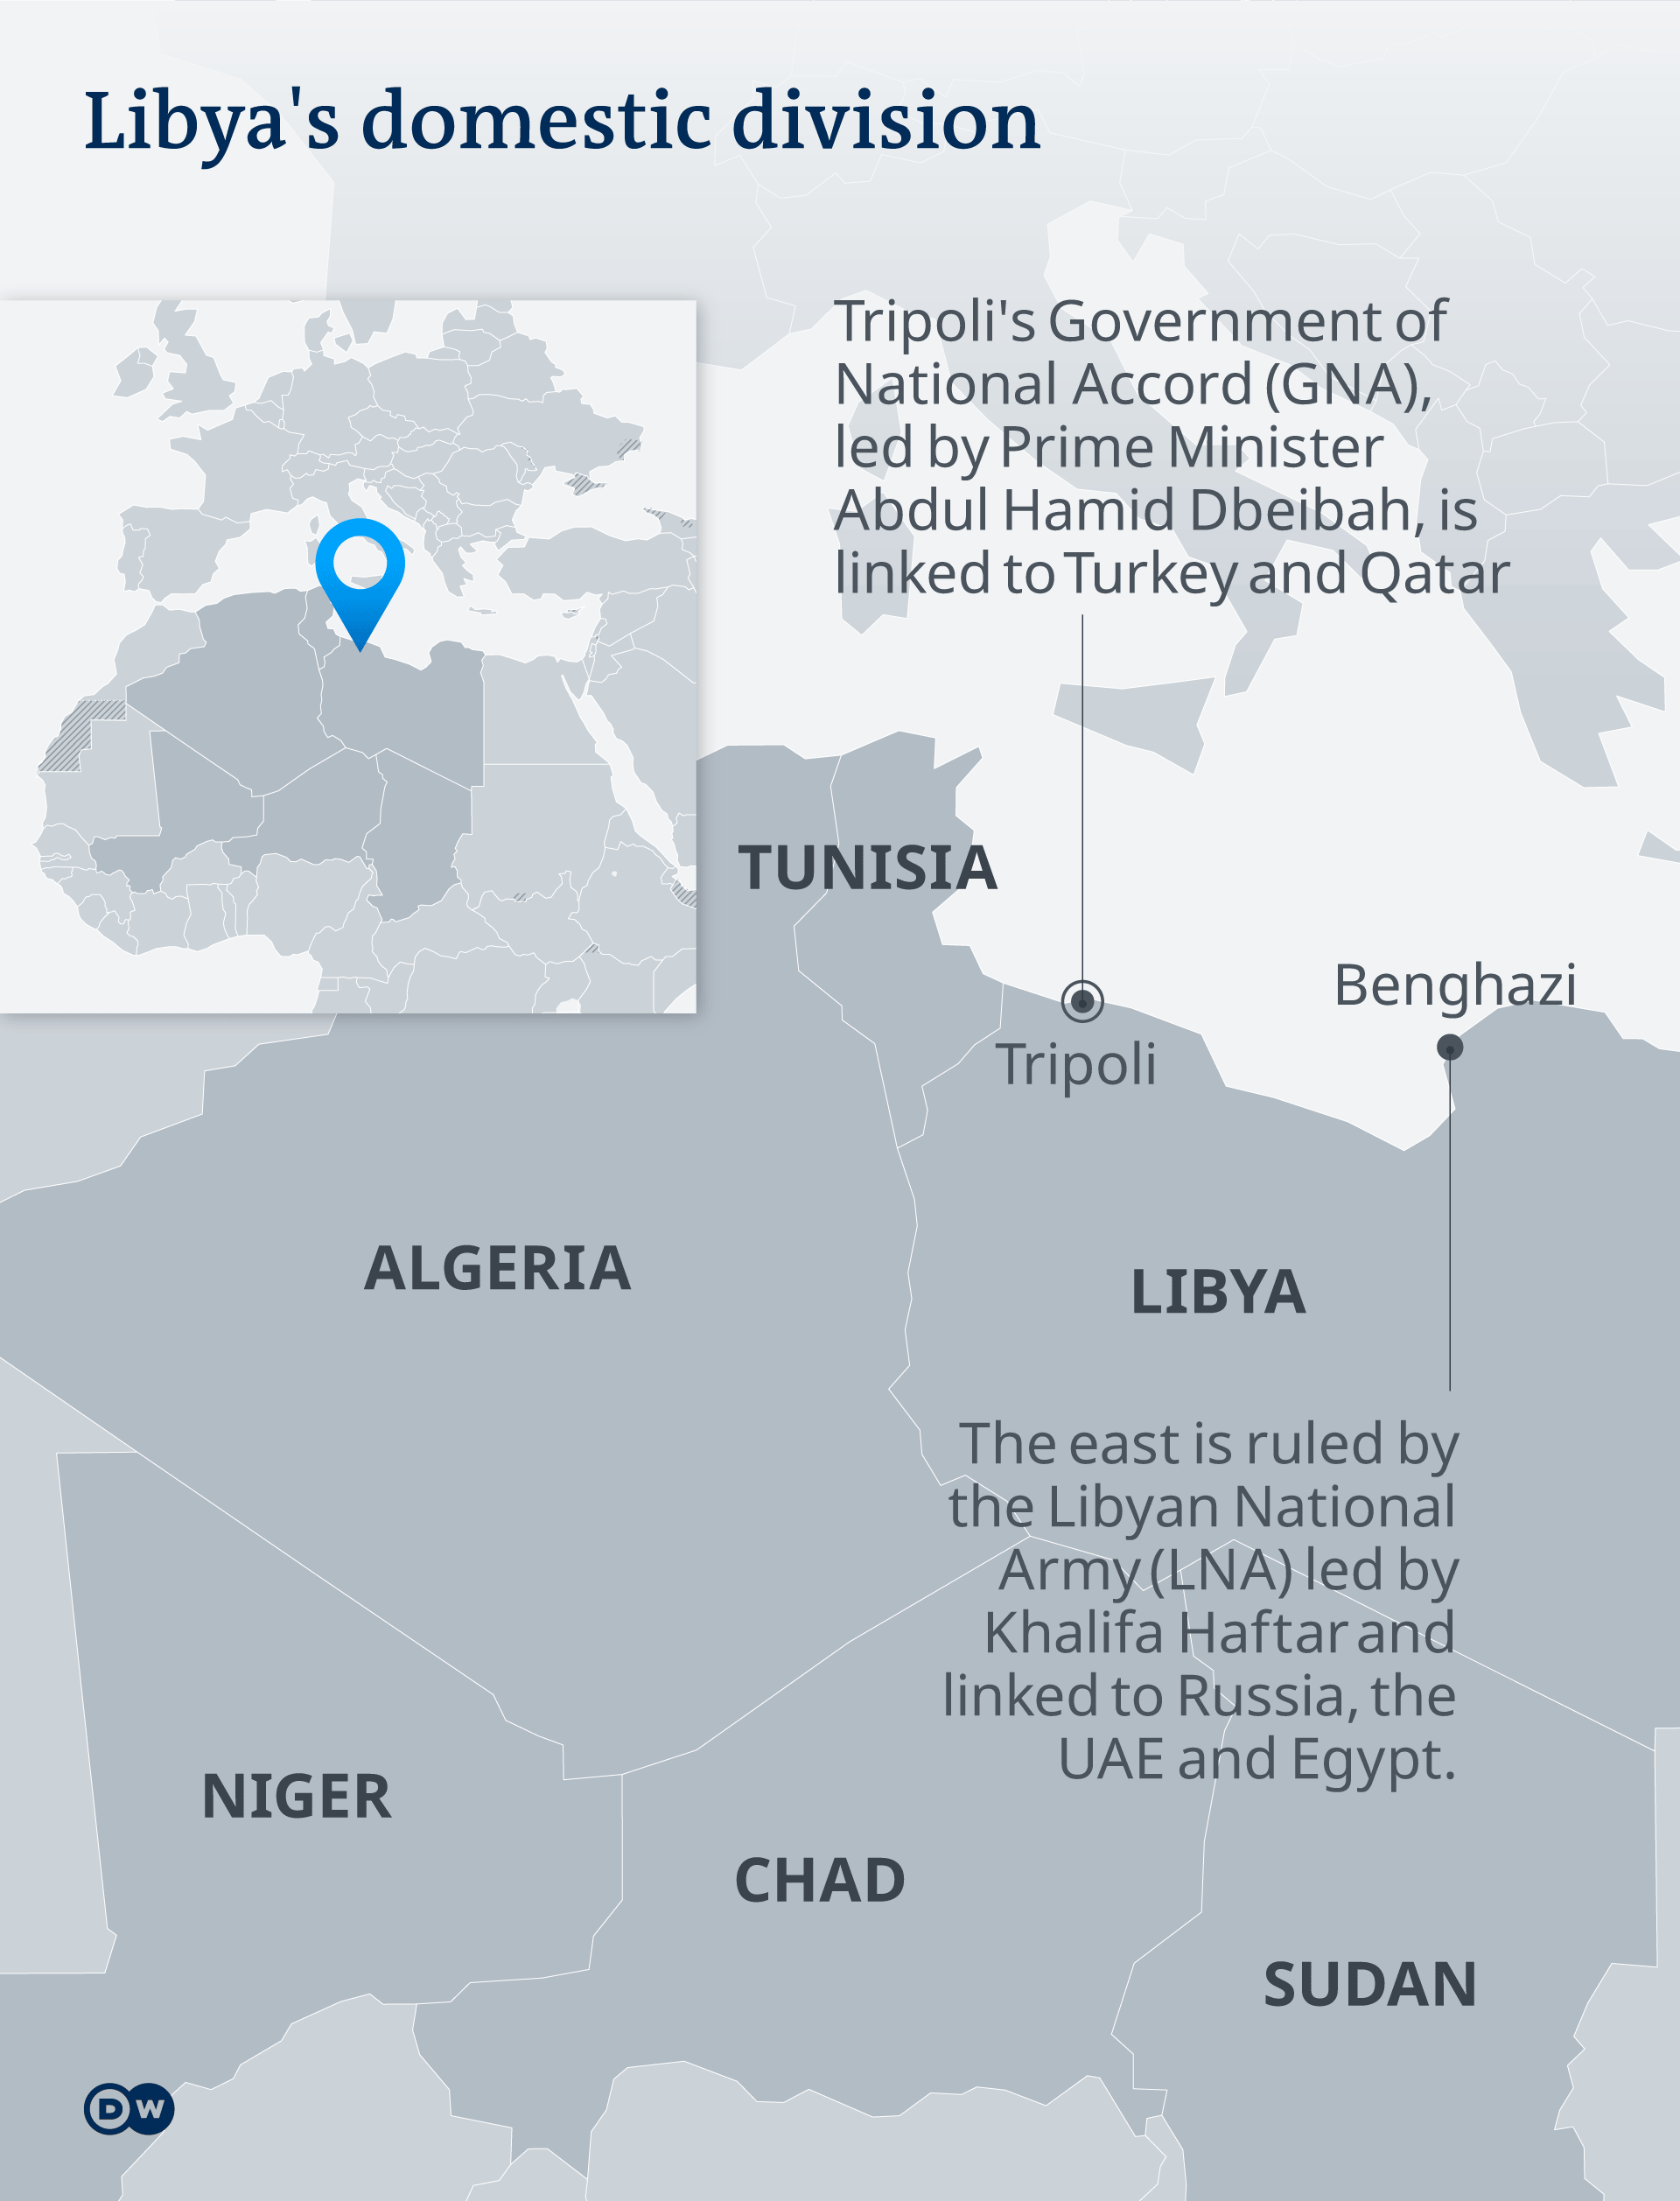 Map of Libya showing the allies of the East and the West.